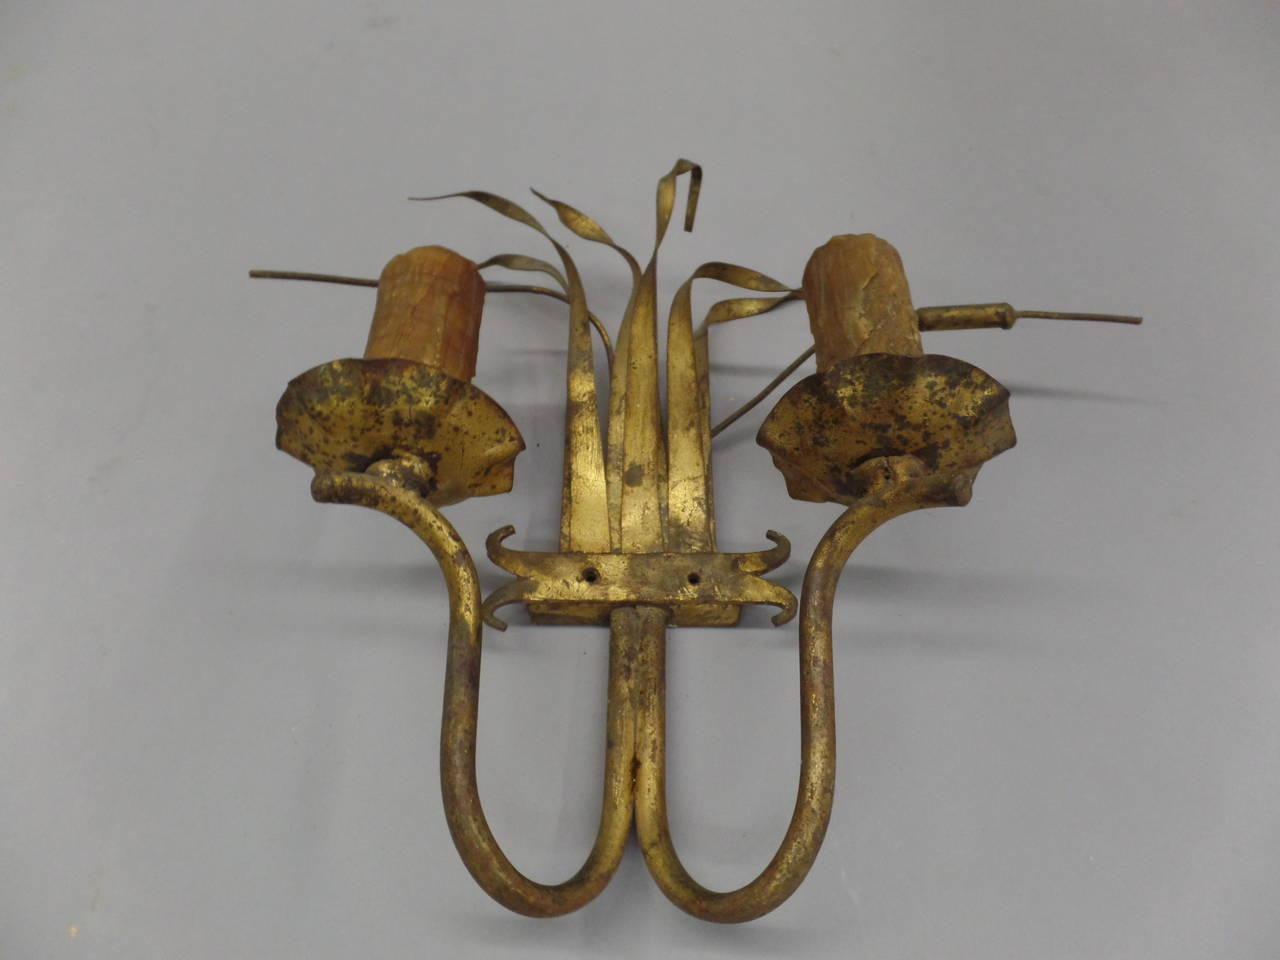 French Iron Wall Sconces : Pair of French Gilt Iron Wall Sconces, 1940s For Sale at 1stdibs